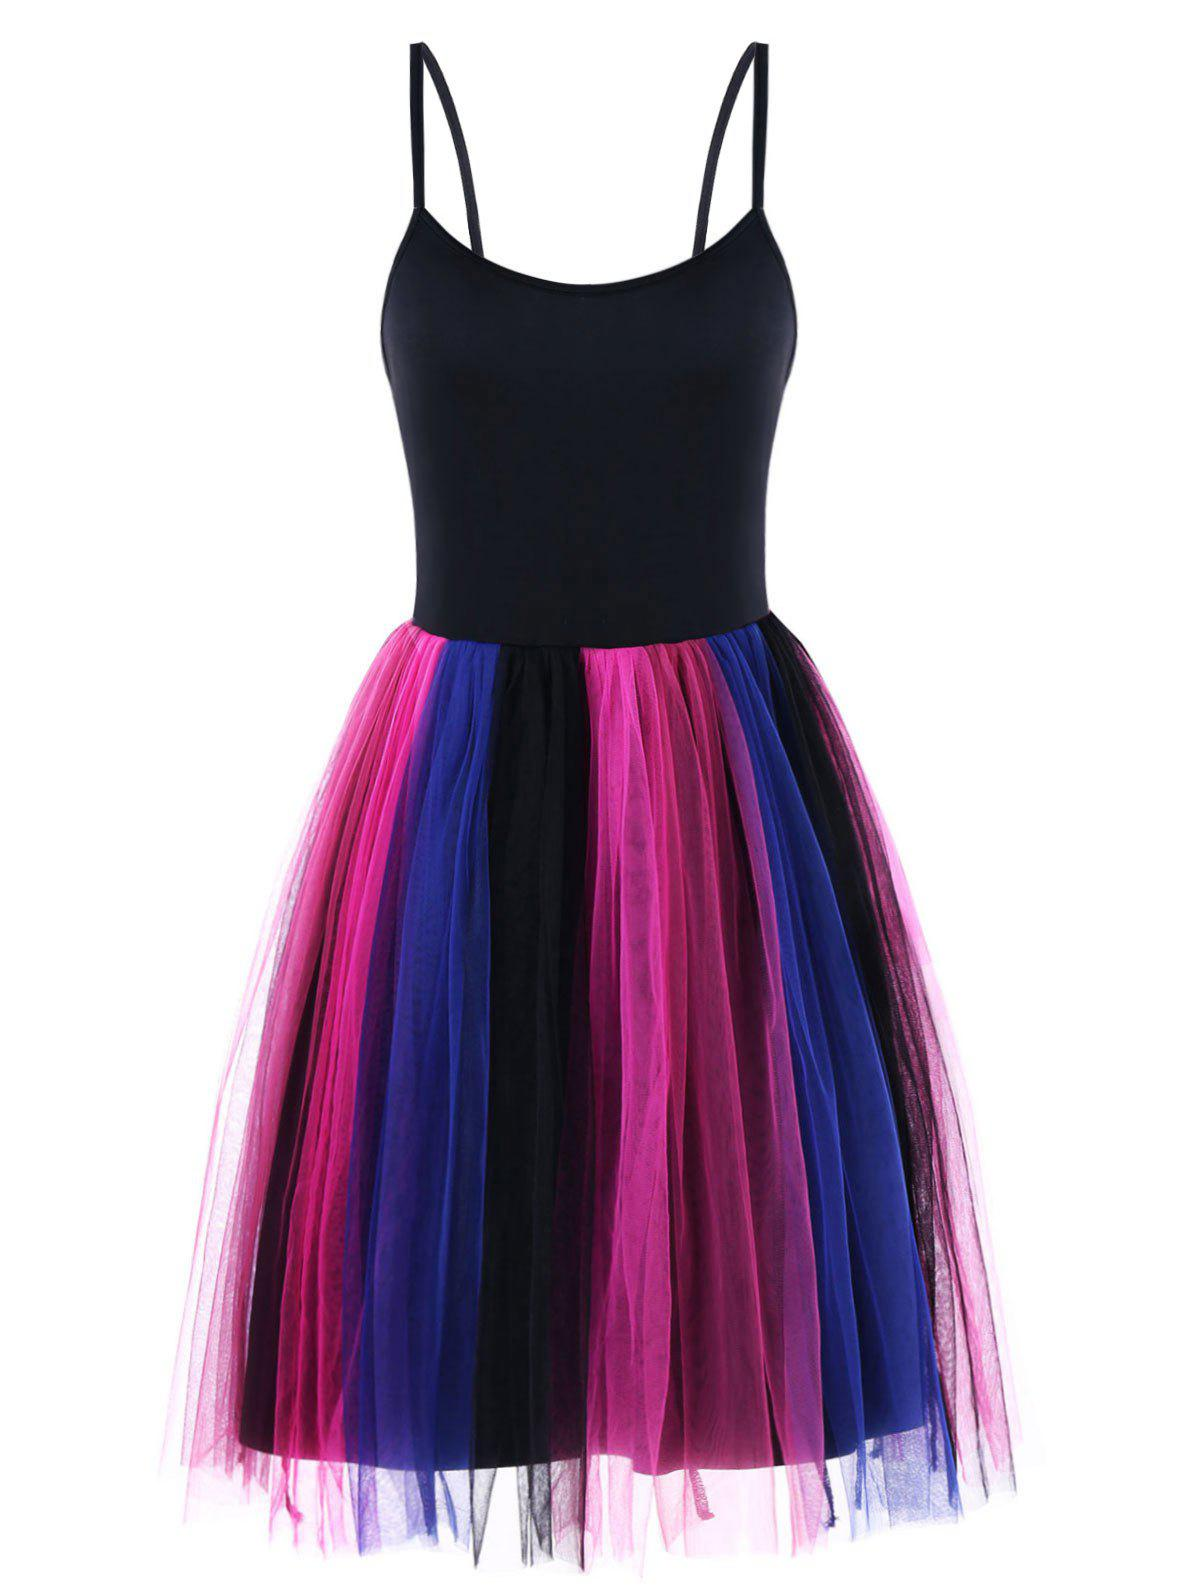 New Tulle Rainbow Pleated Fit and Flare Dress